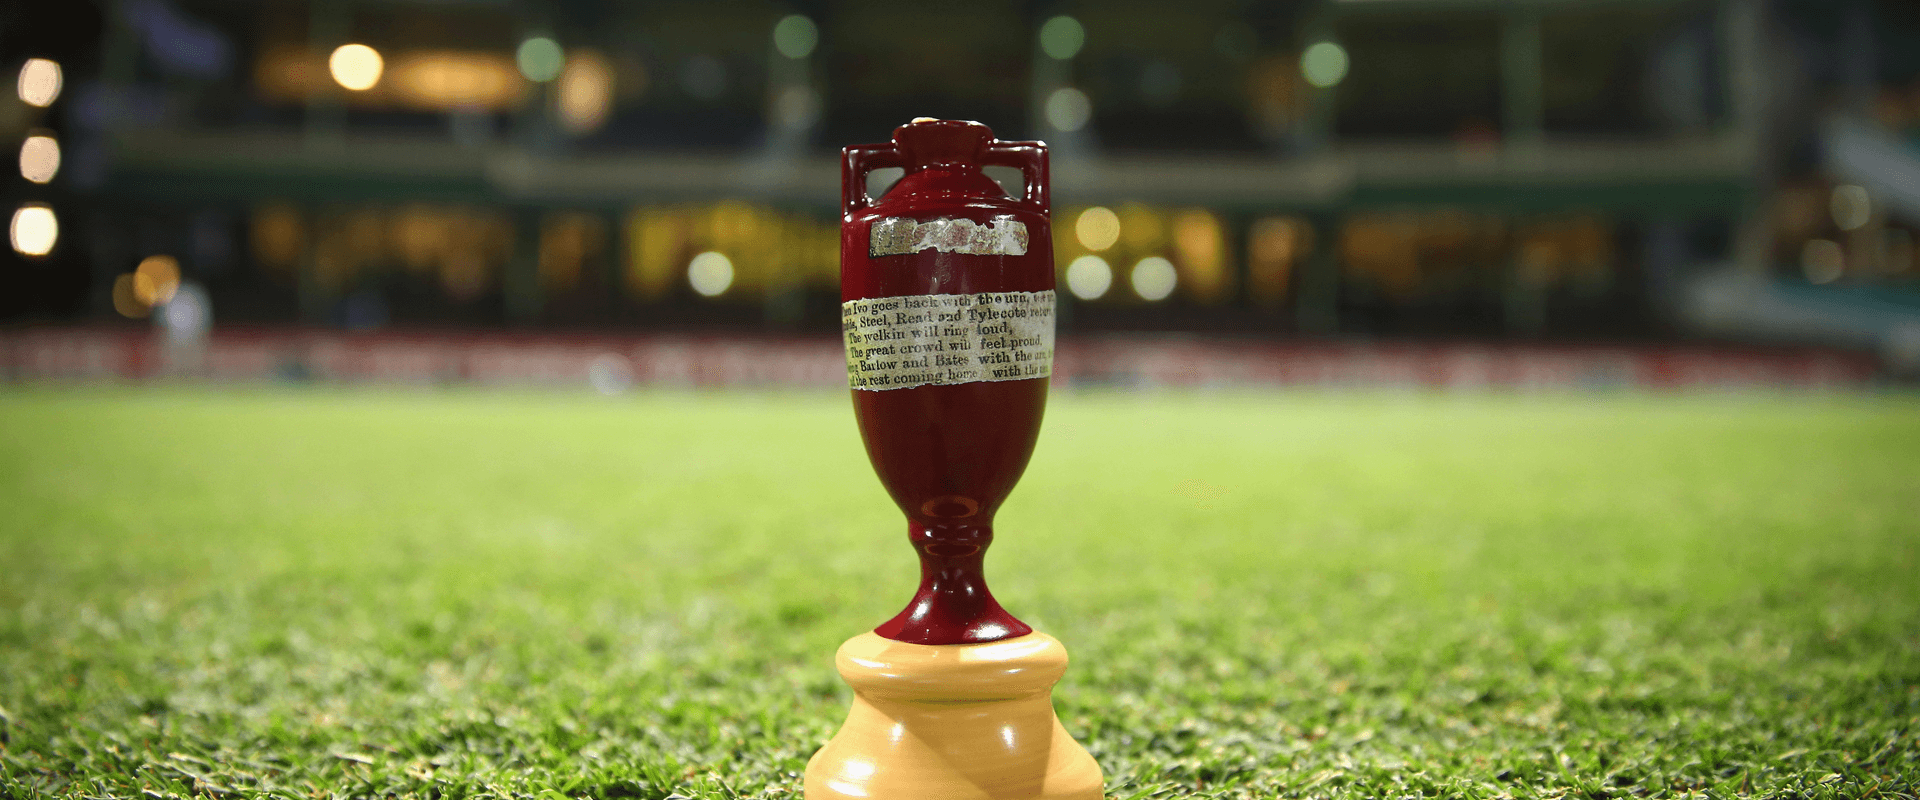 The Ashes 2017 - 2018 Series